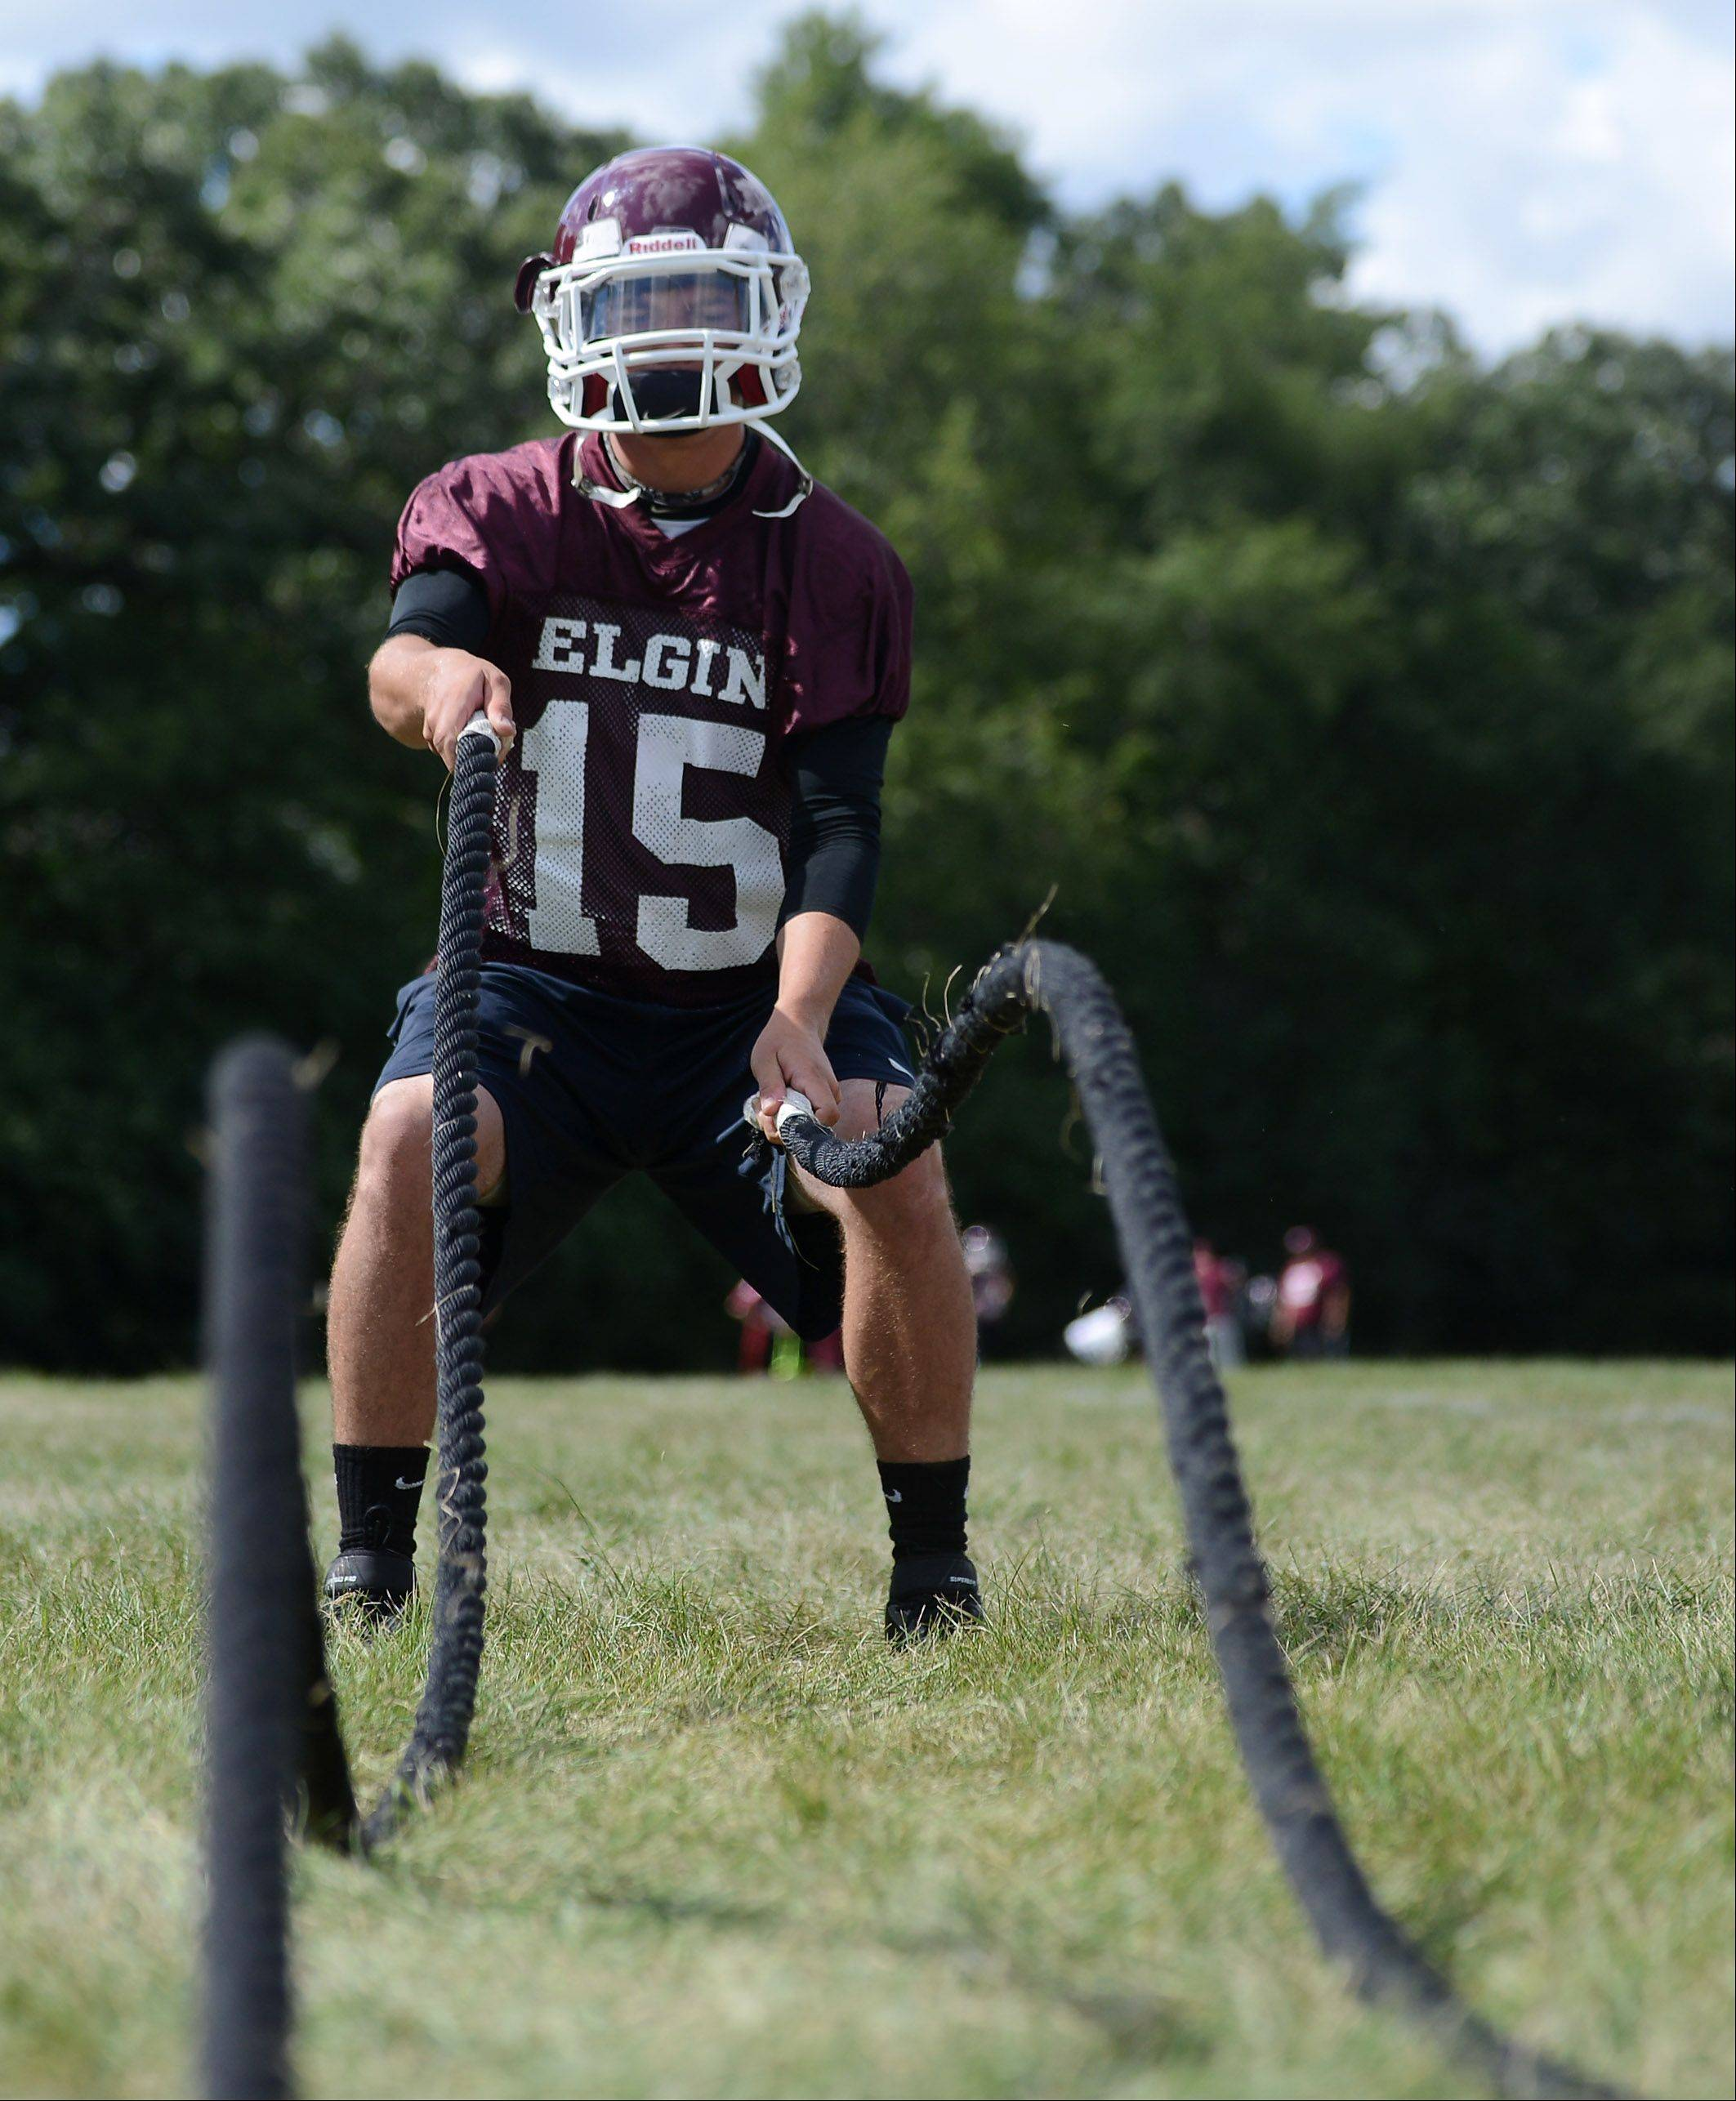 Senior quarterback Ryan Sitter works out during the first day of fall football practice at Elgin High School.